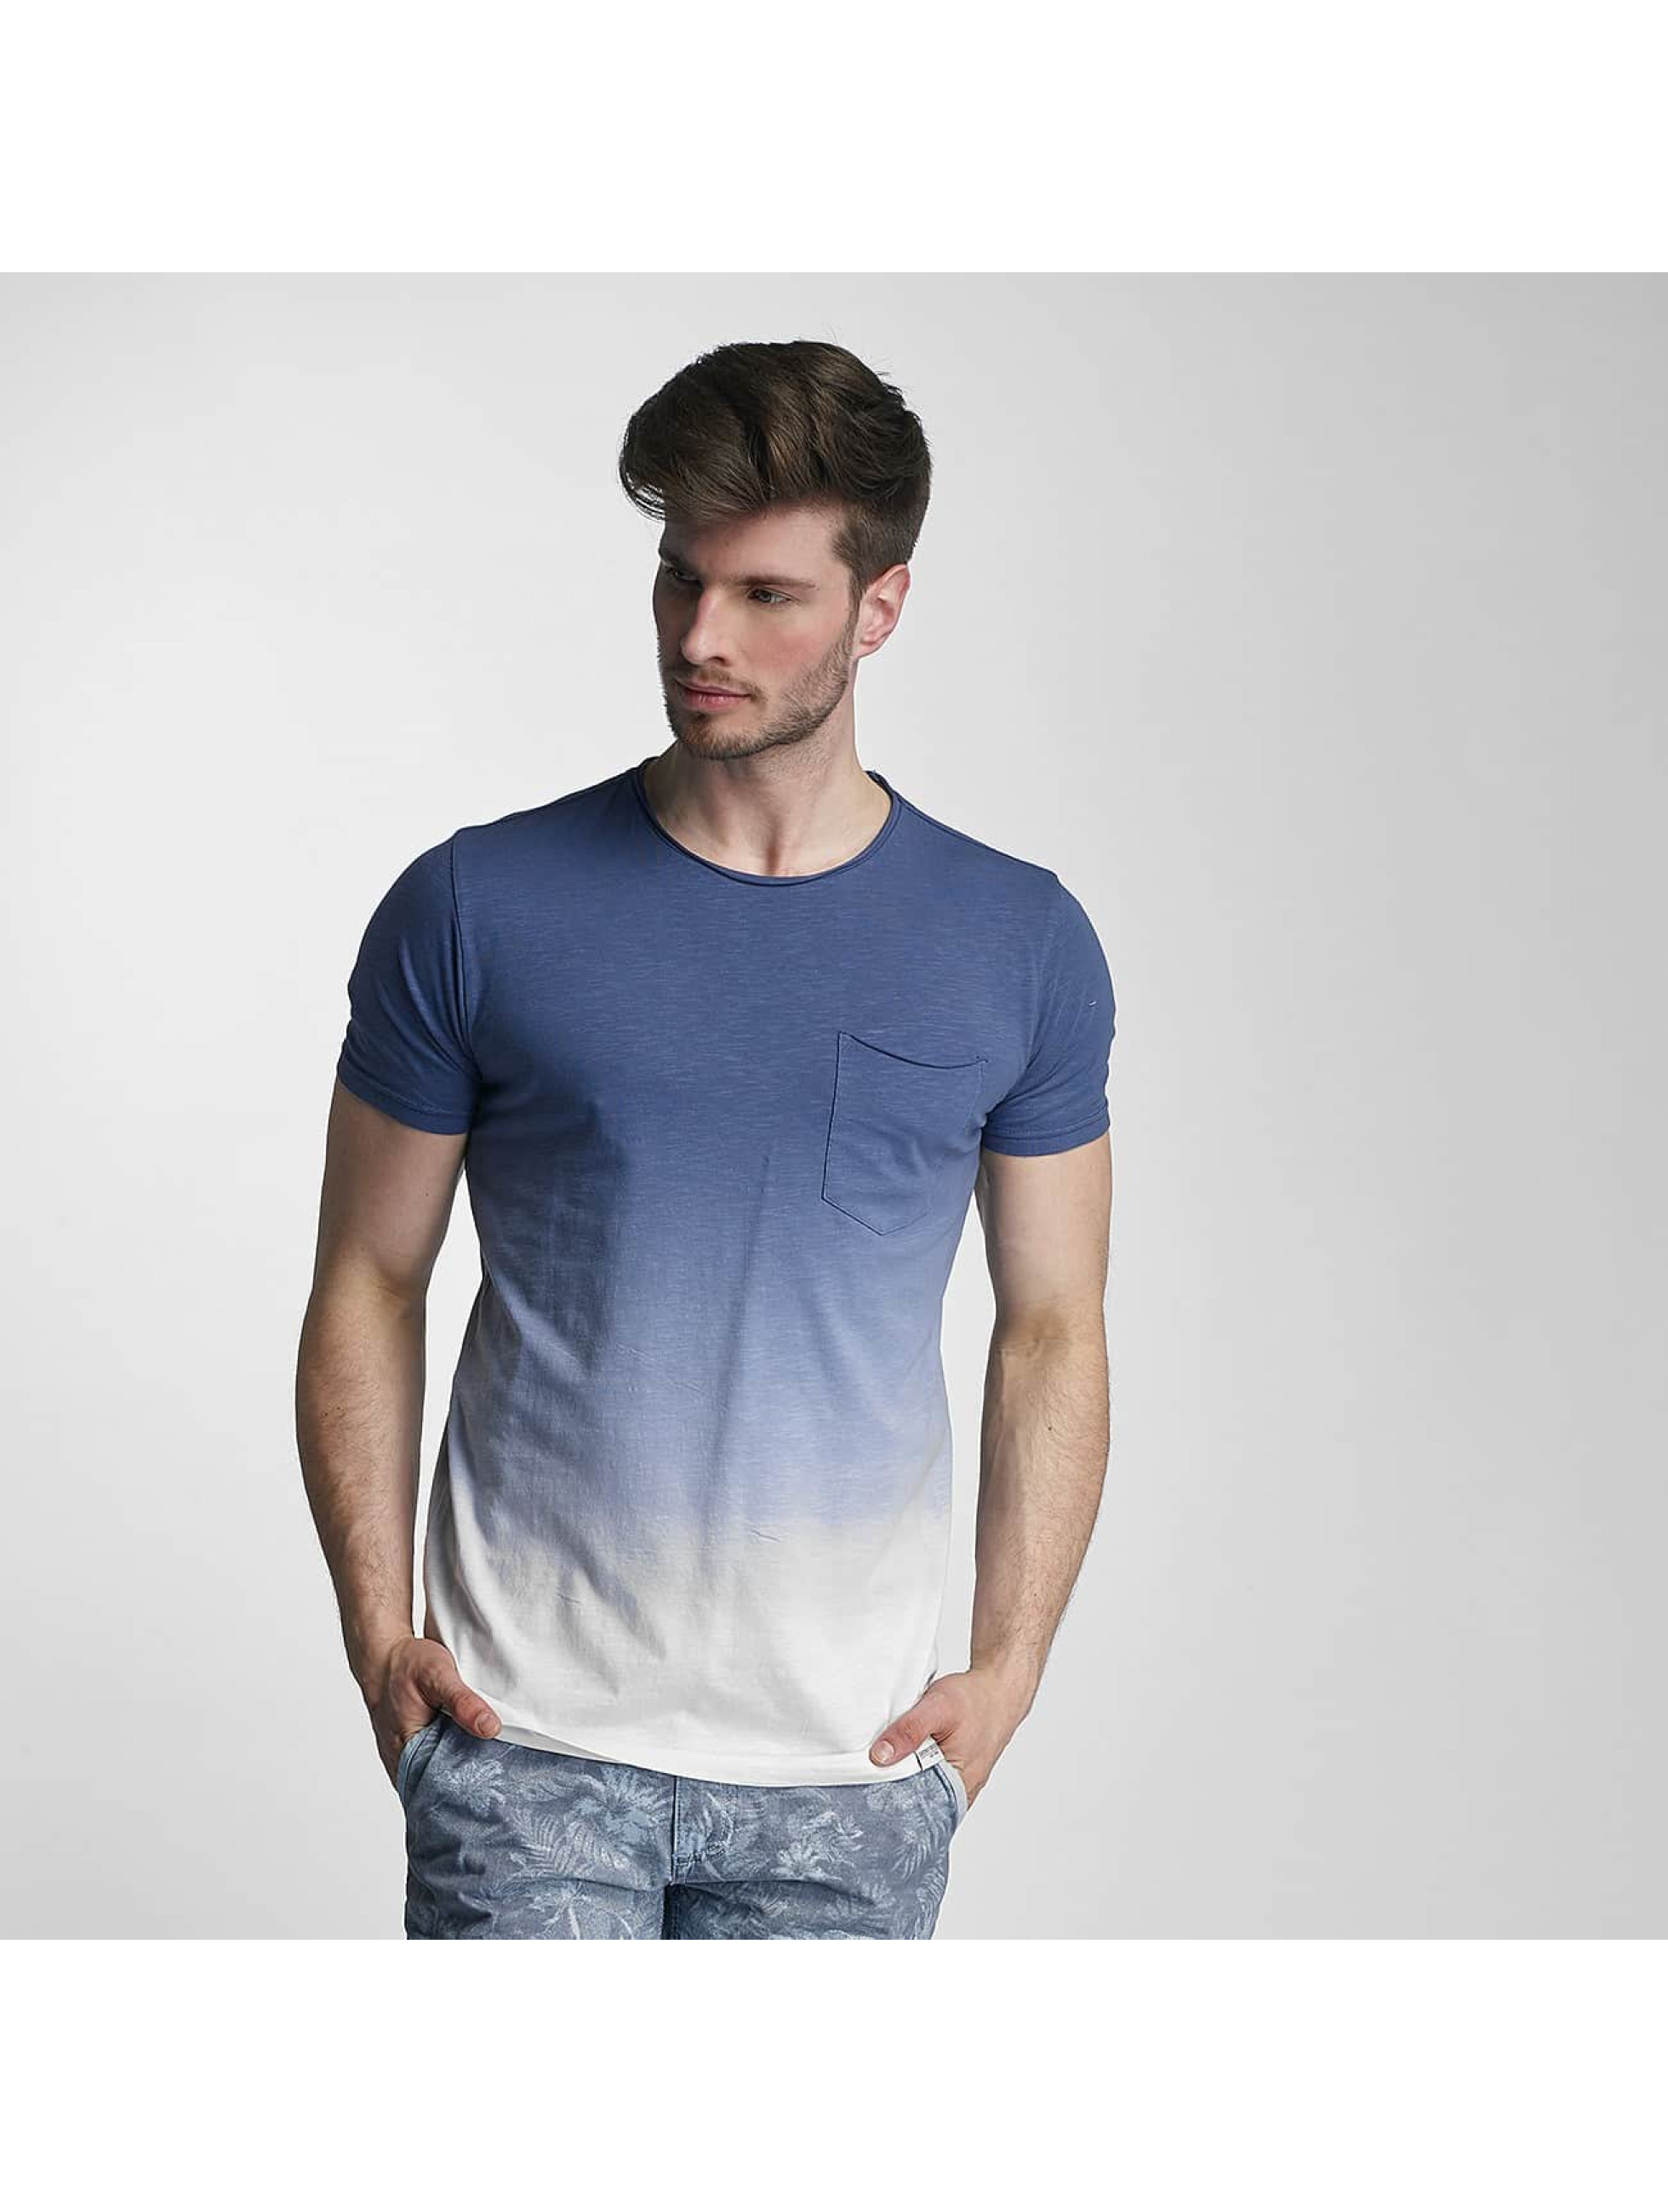 SHINE Original t-shirt Dip Dyed blauw